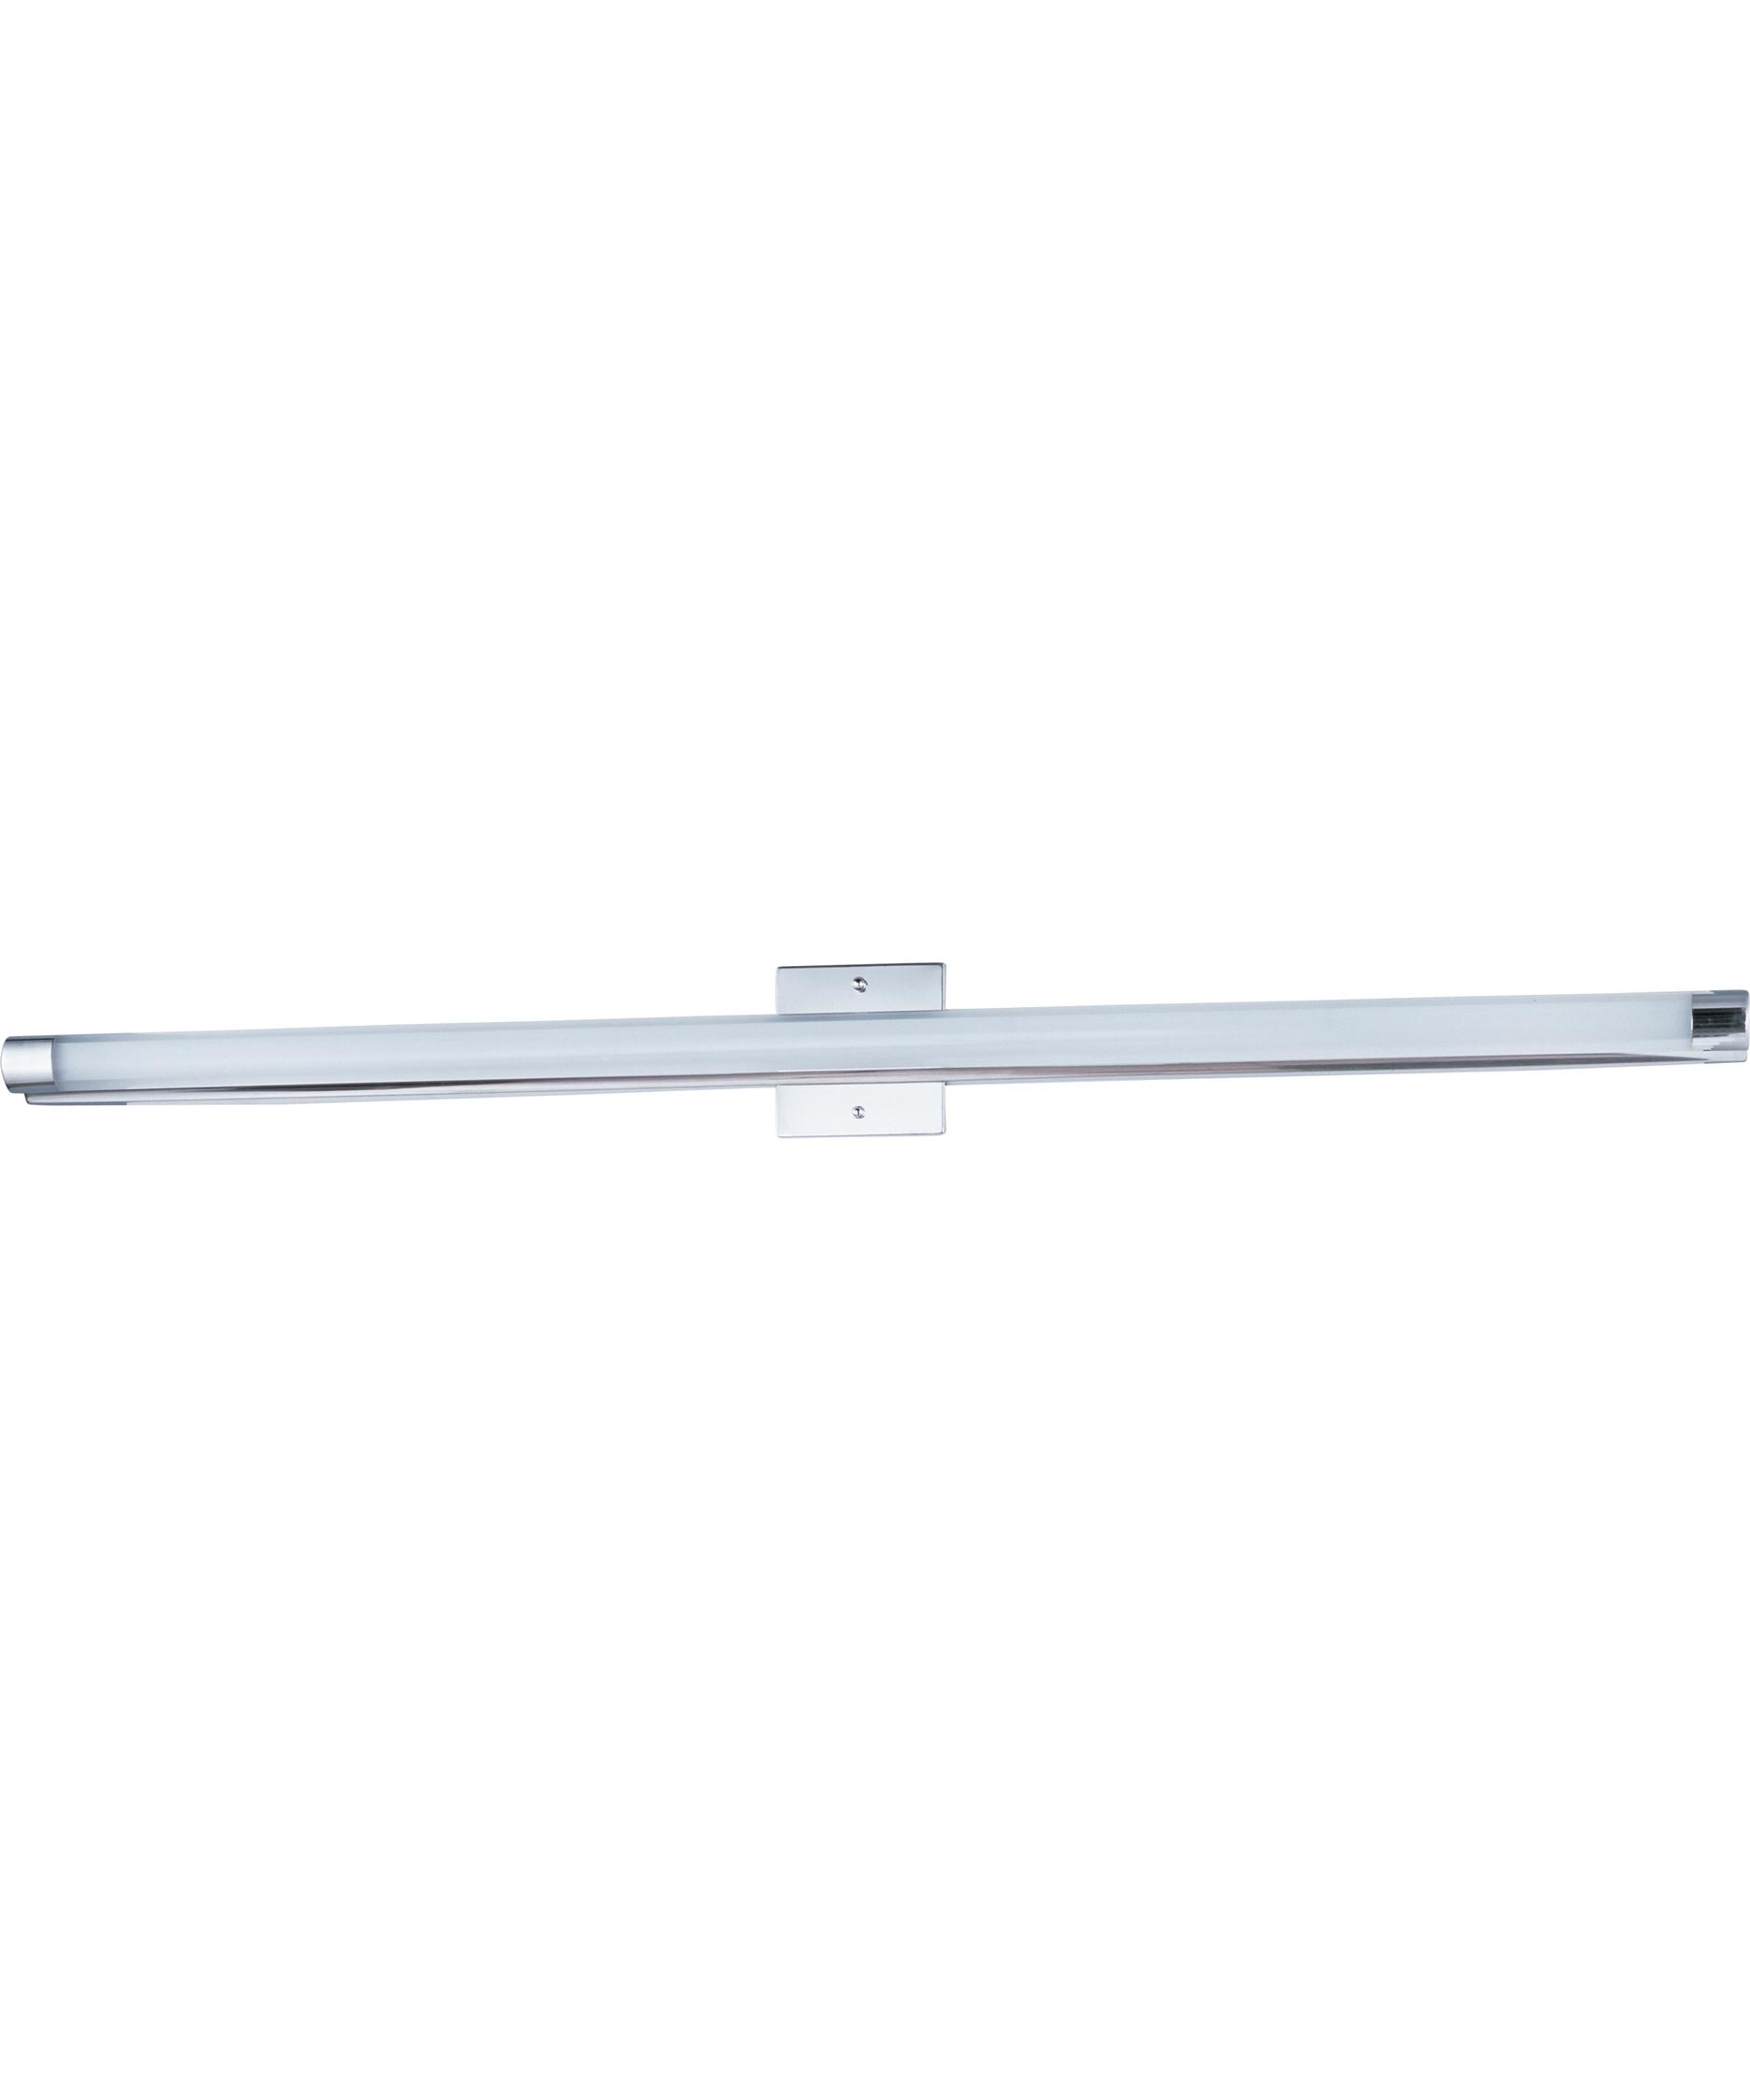 et lighting e wand led  inch wide bath vanity light  - shown in polished chrome finish and clear white glass